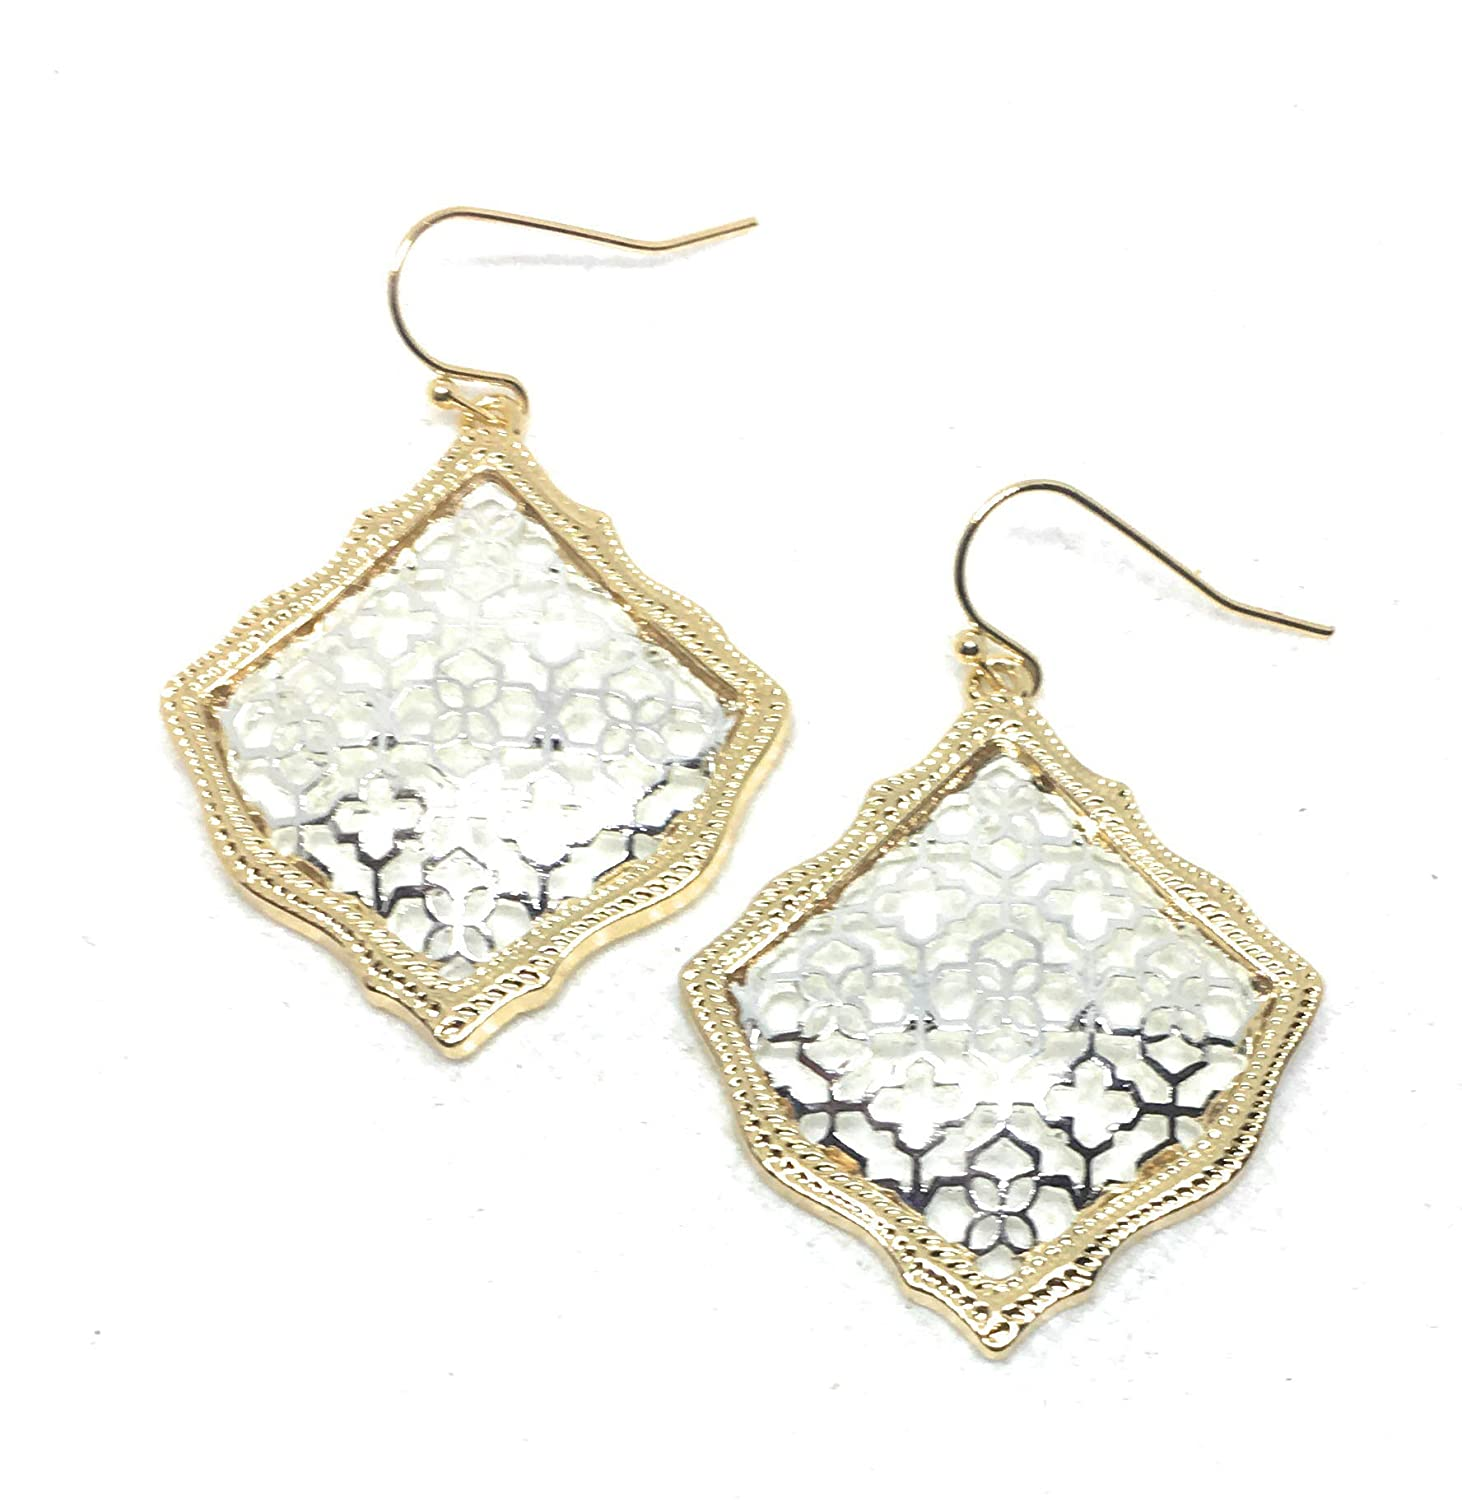 Inspired Fashion Jewelry Square Morrocan Earrings in Gold//Silver